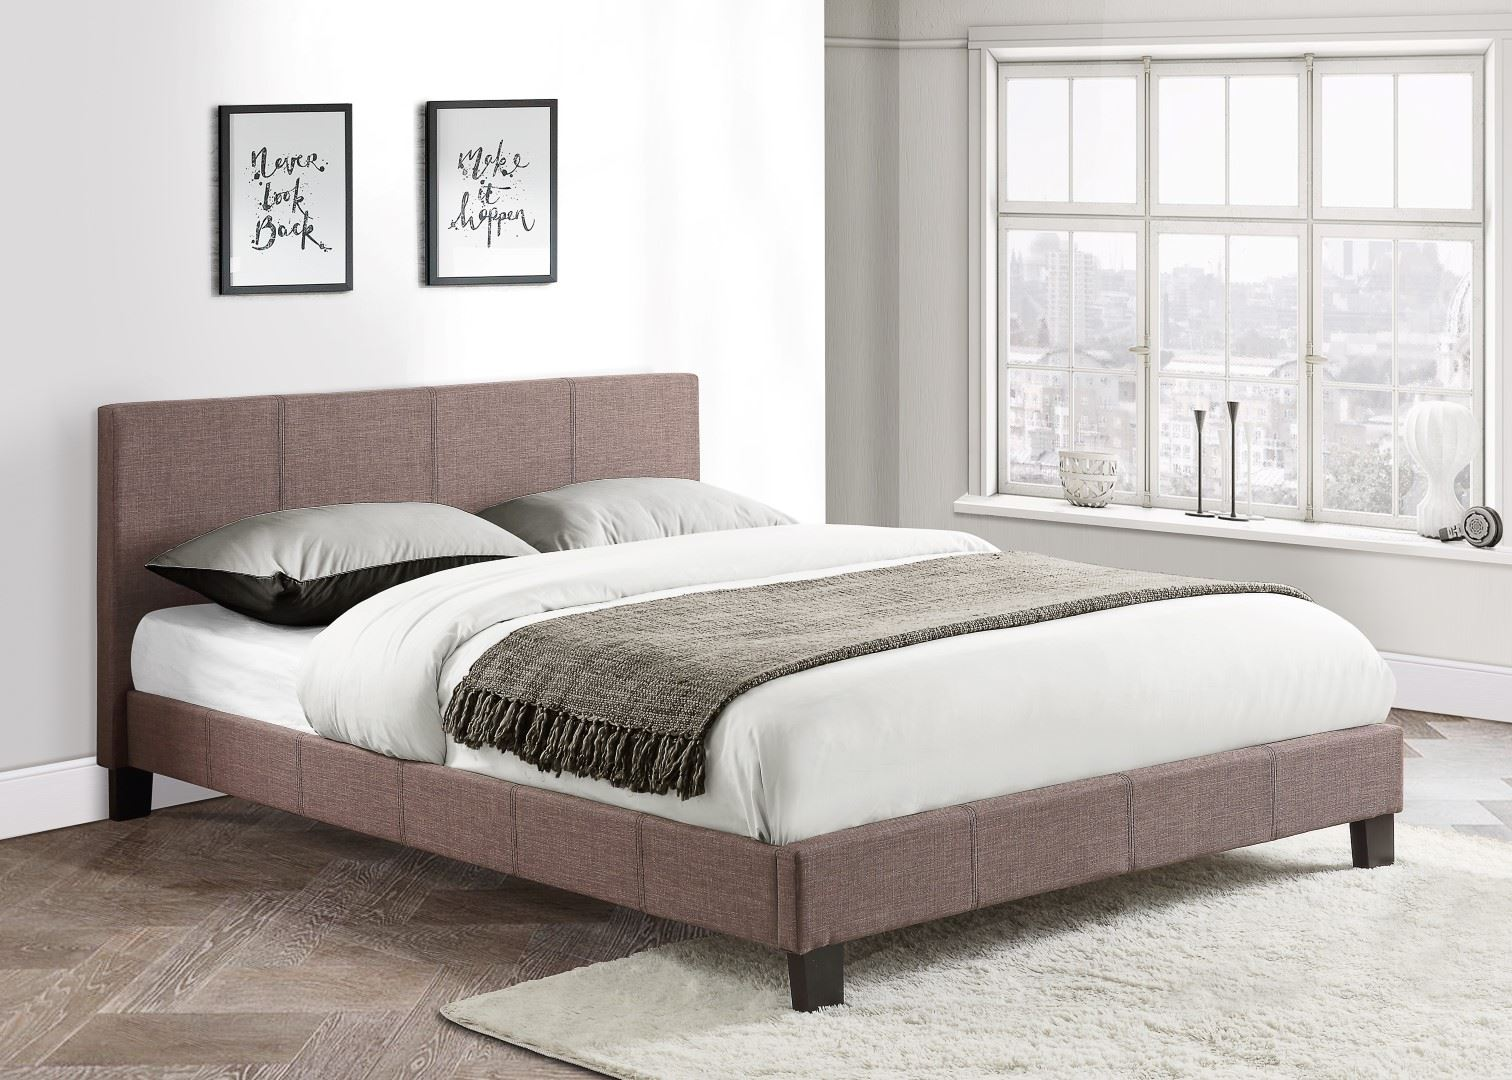 Birlea Berlin Grey Fabric Bed King Size 5FT 150CM Frame Upholstered